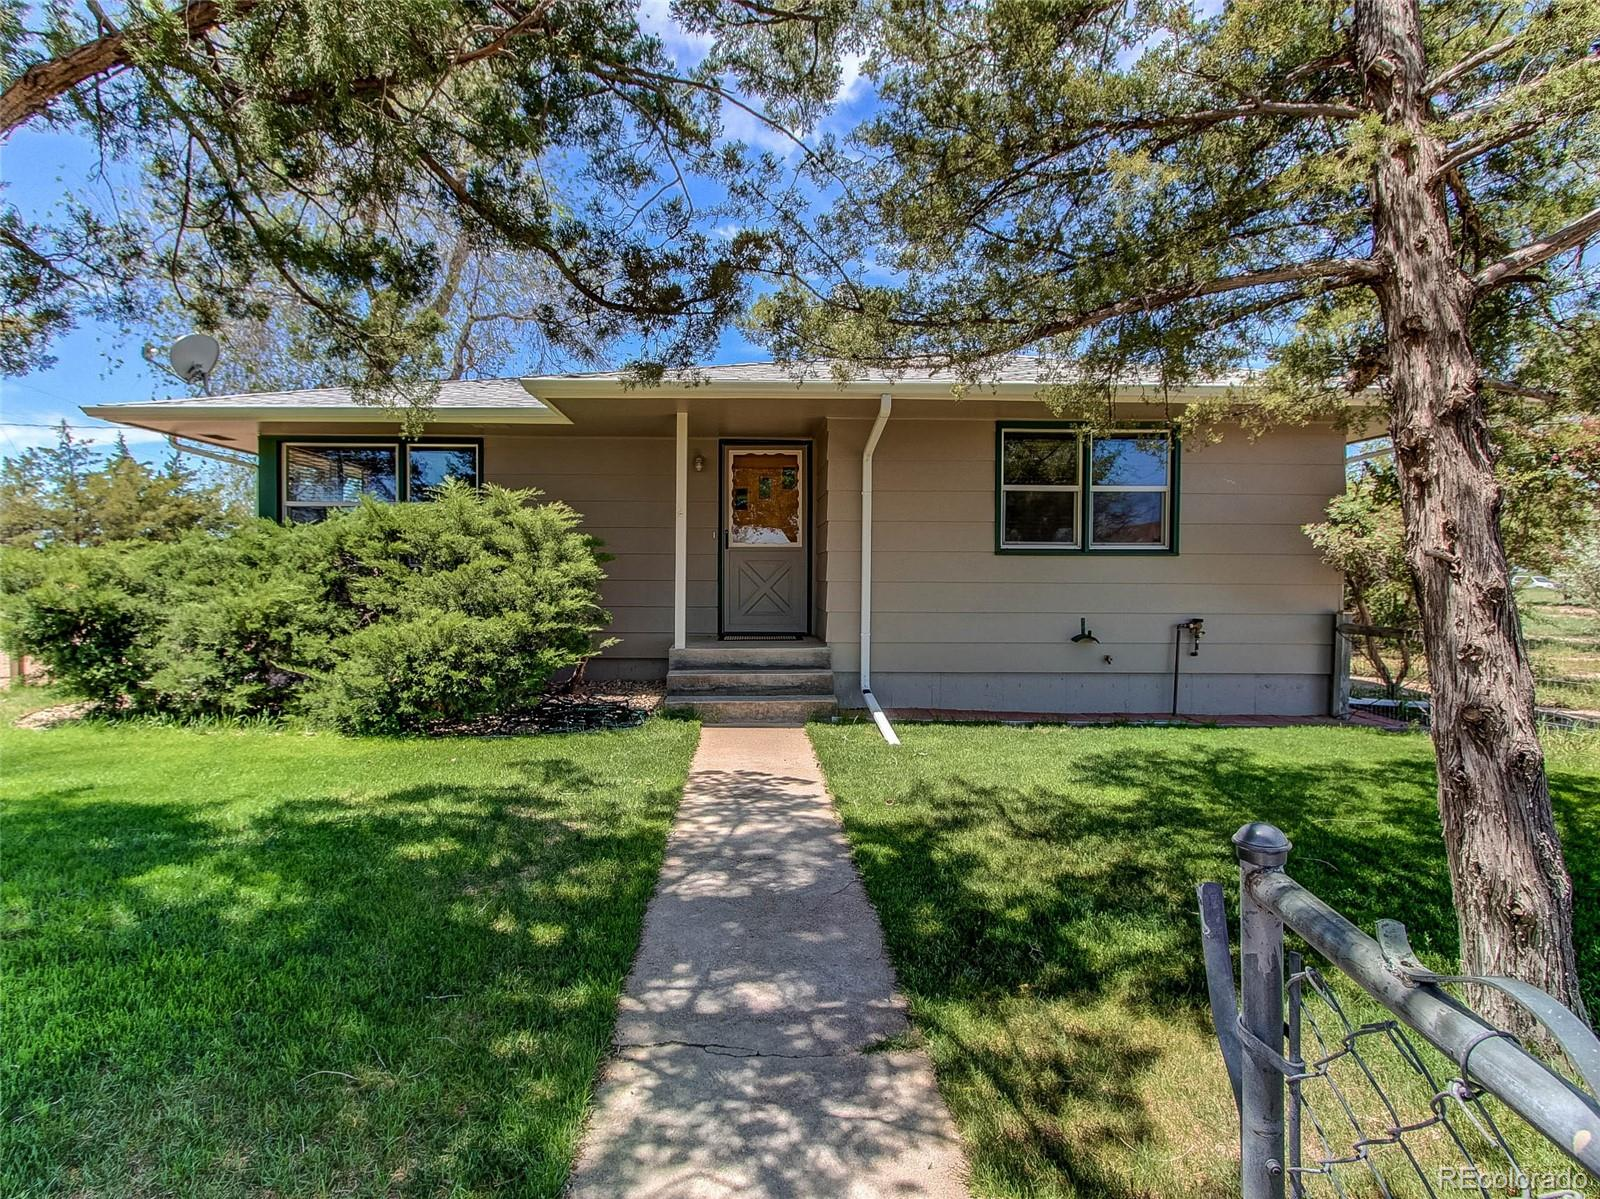 17953 County Road 14, Fort Morgan, CO 80701 - Fort Morgan, CO real estate listing